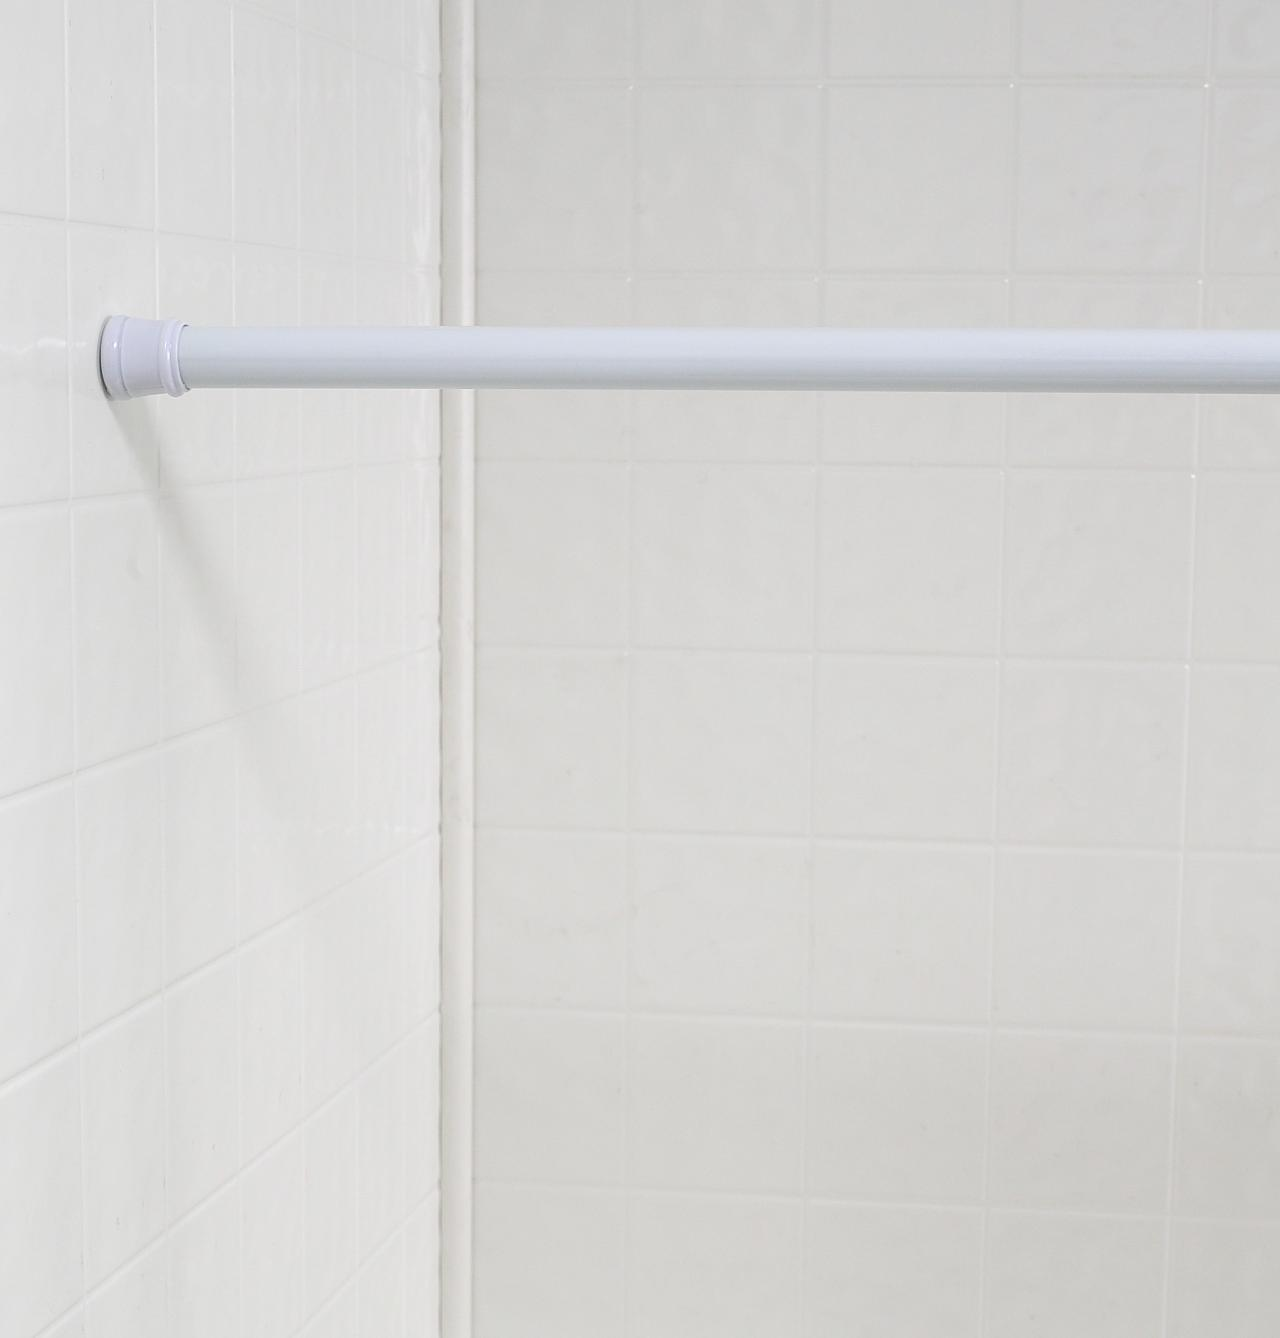 Carnation Home Fashions Inc Shower Curtain Tension Rods